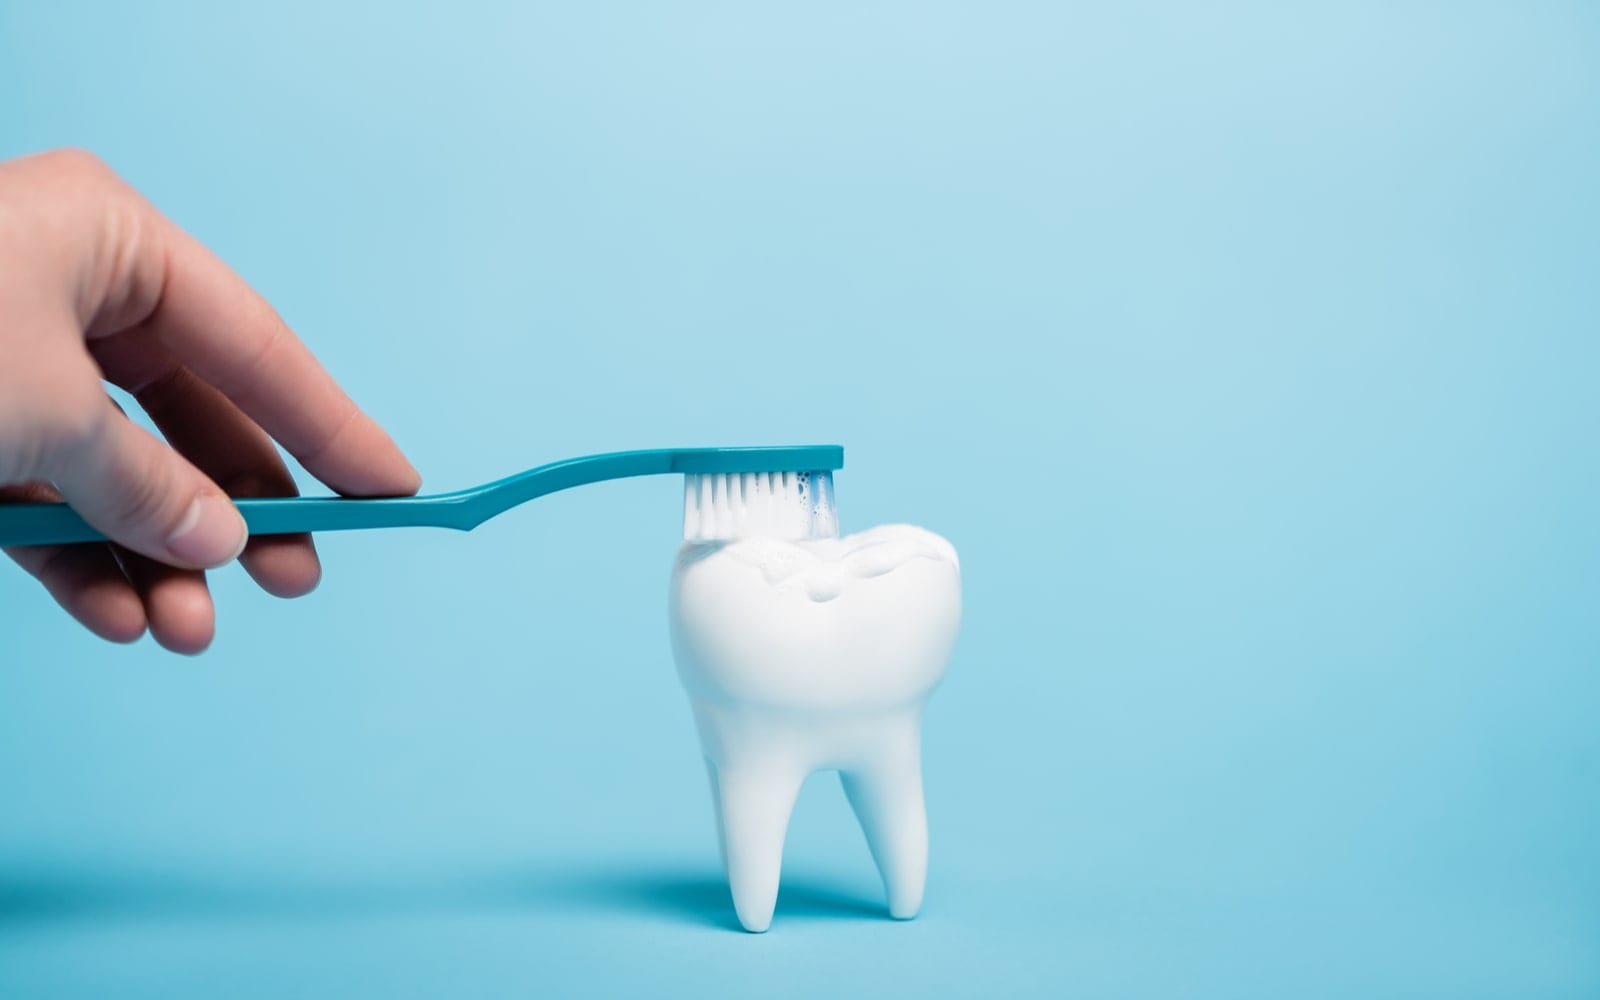 Model tooth being brushed